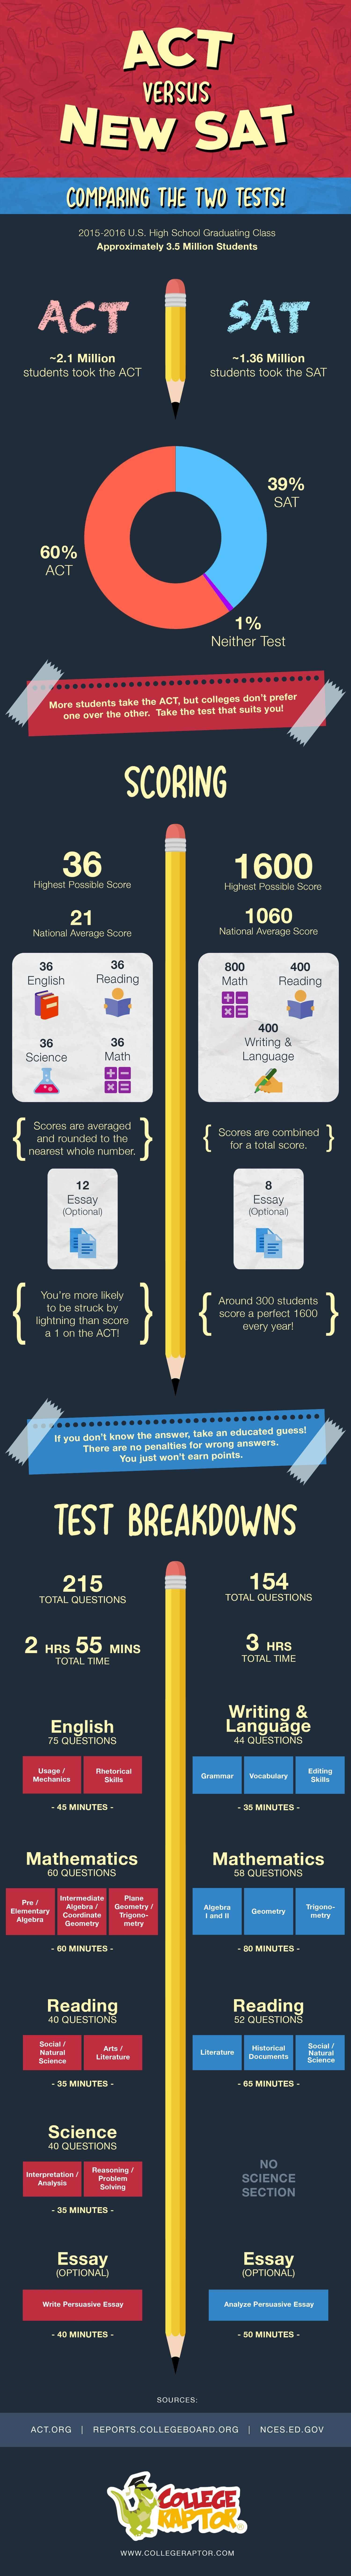 ACT vs SAT statistics infographic